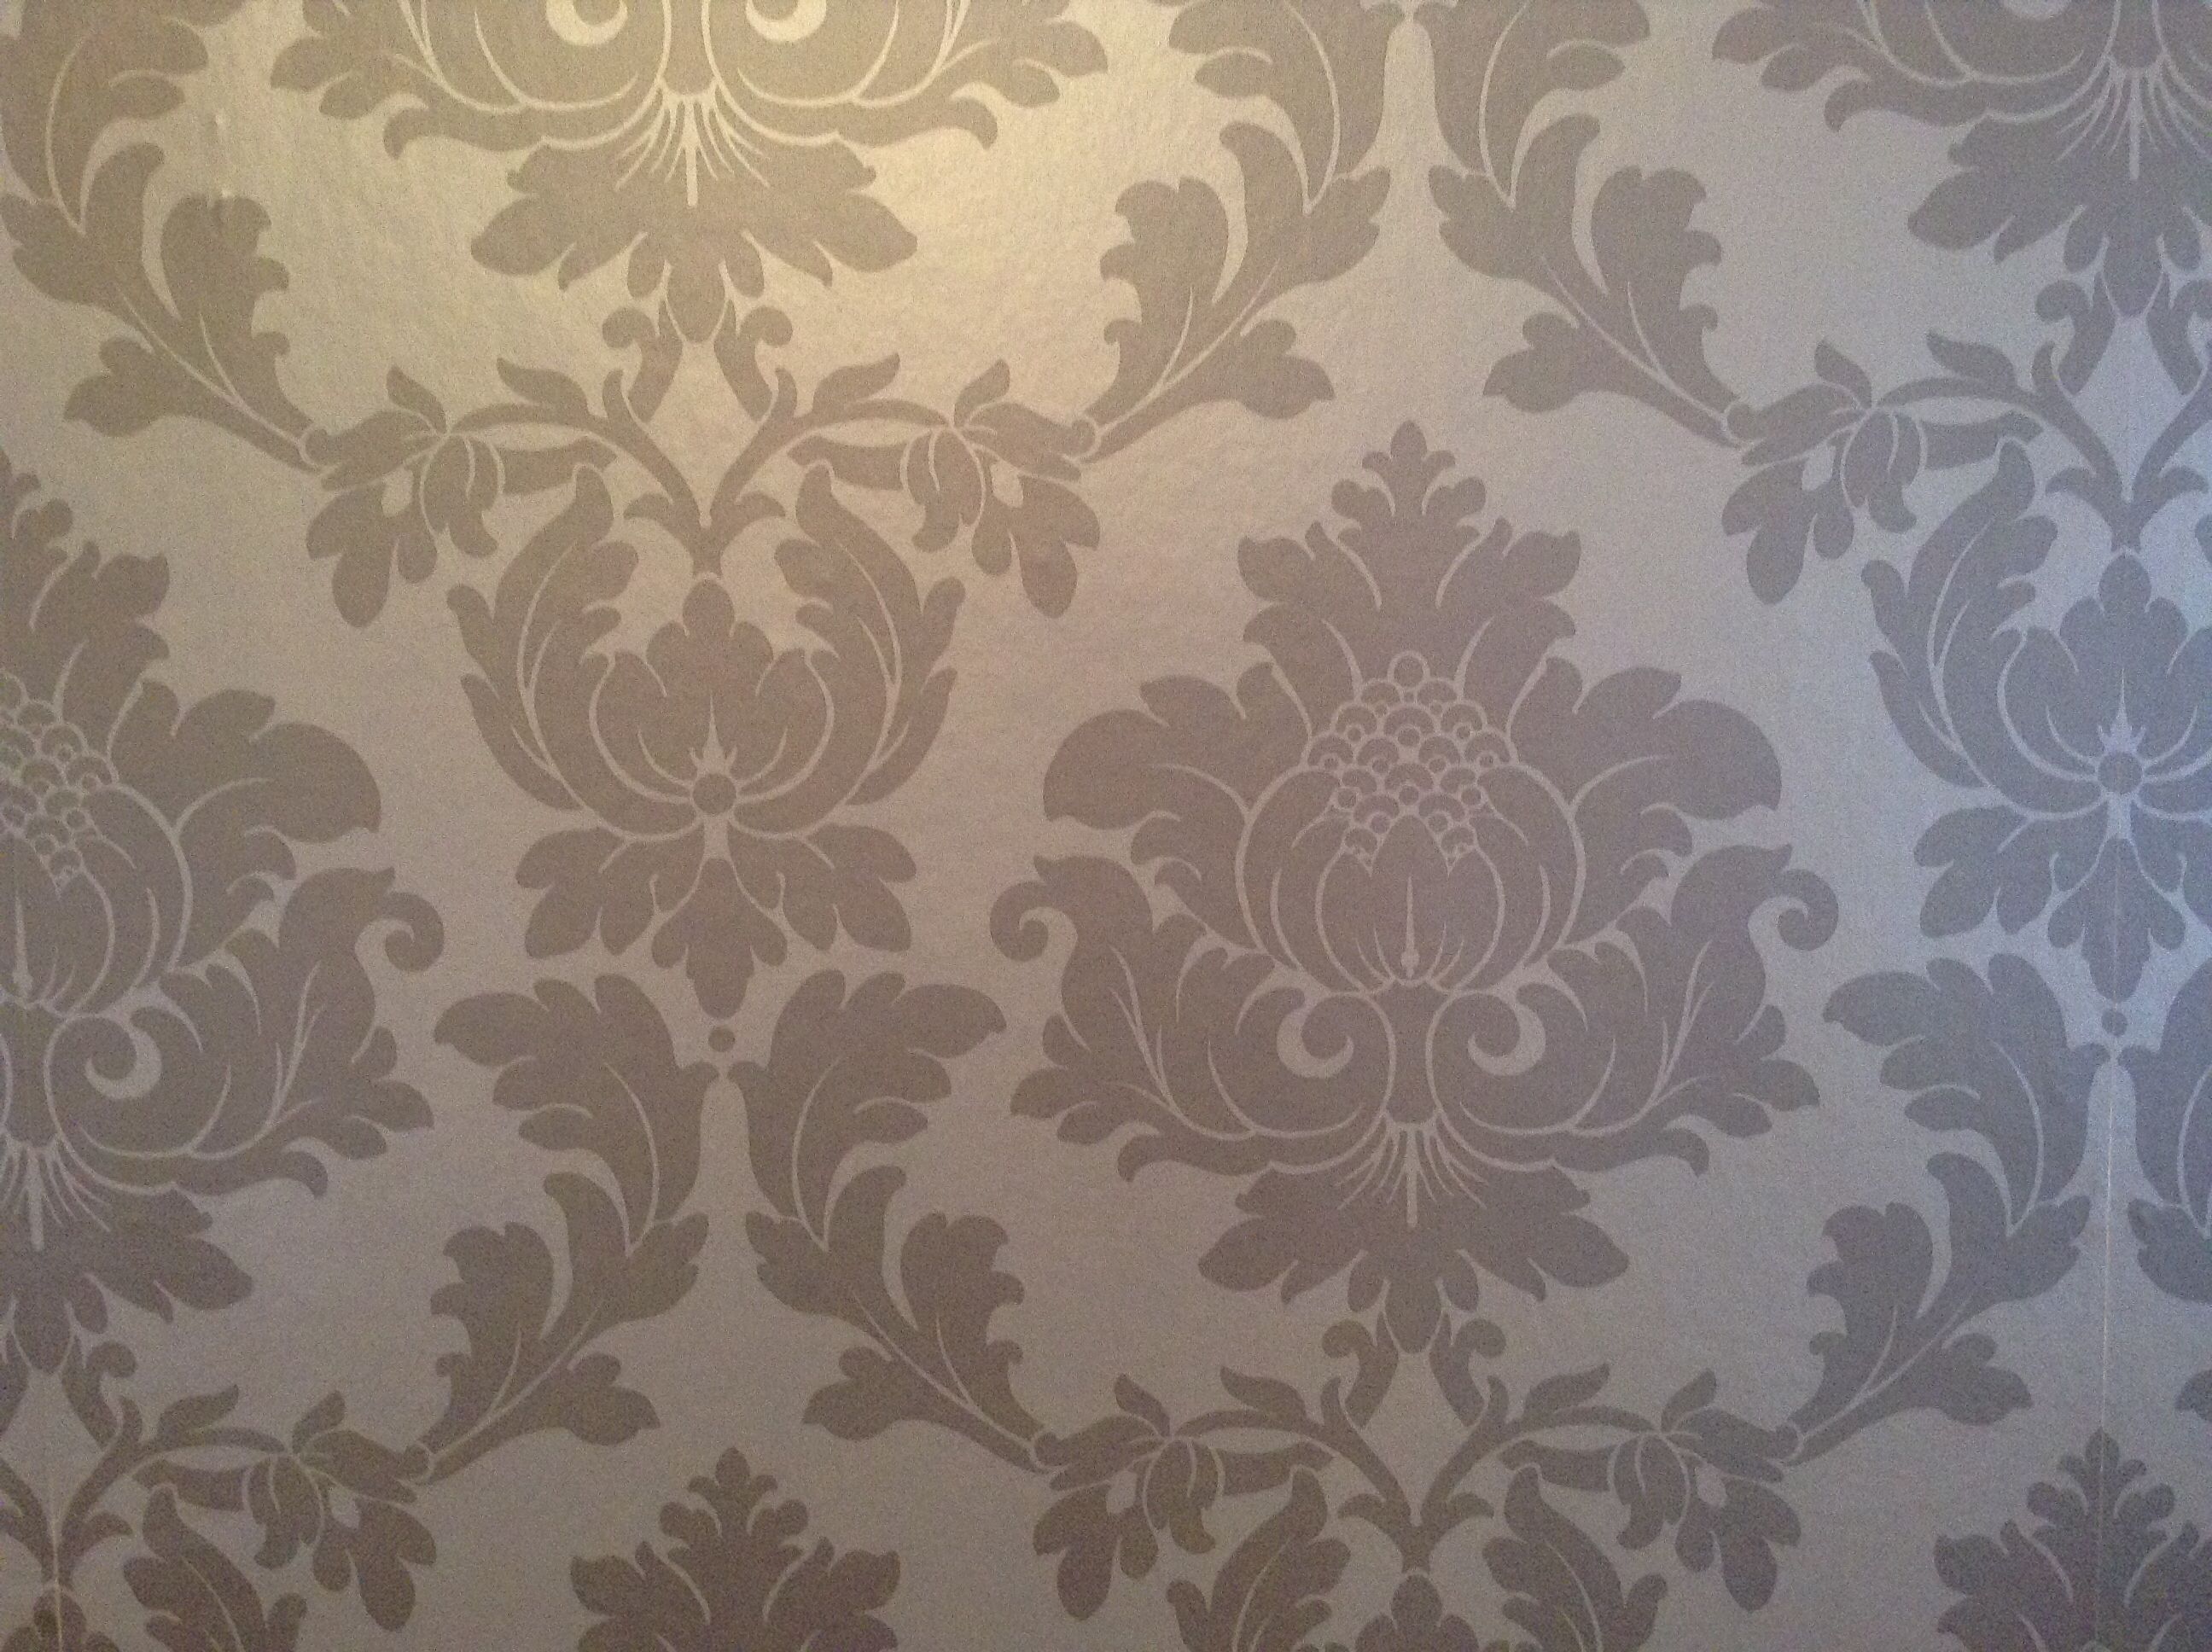 Living room wallpaper texture - Mink Damask Print Wallpaper